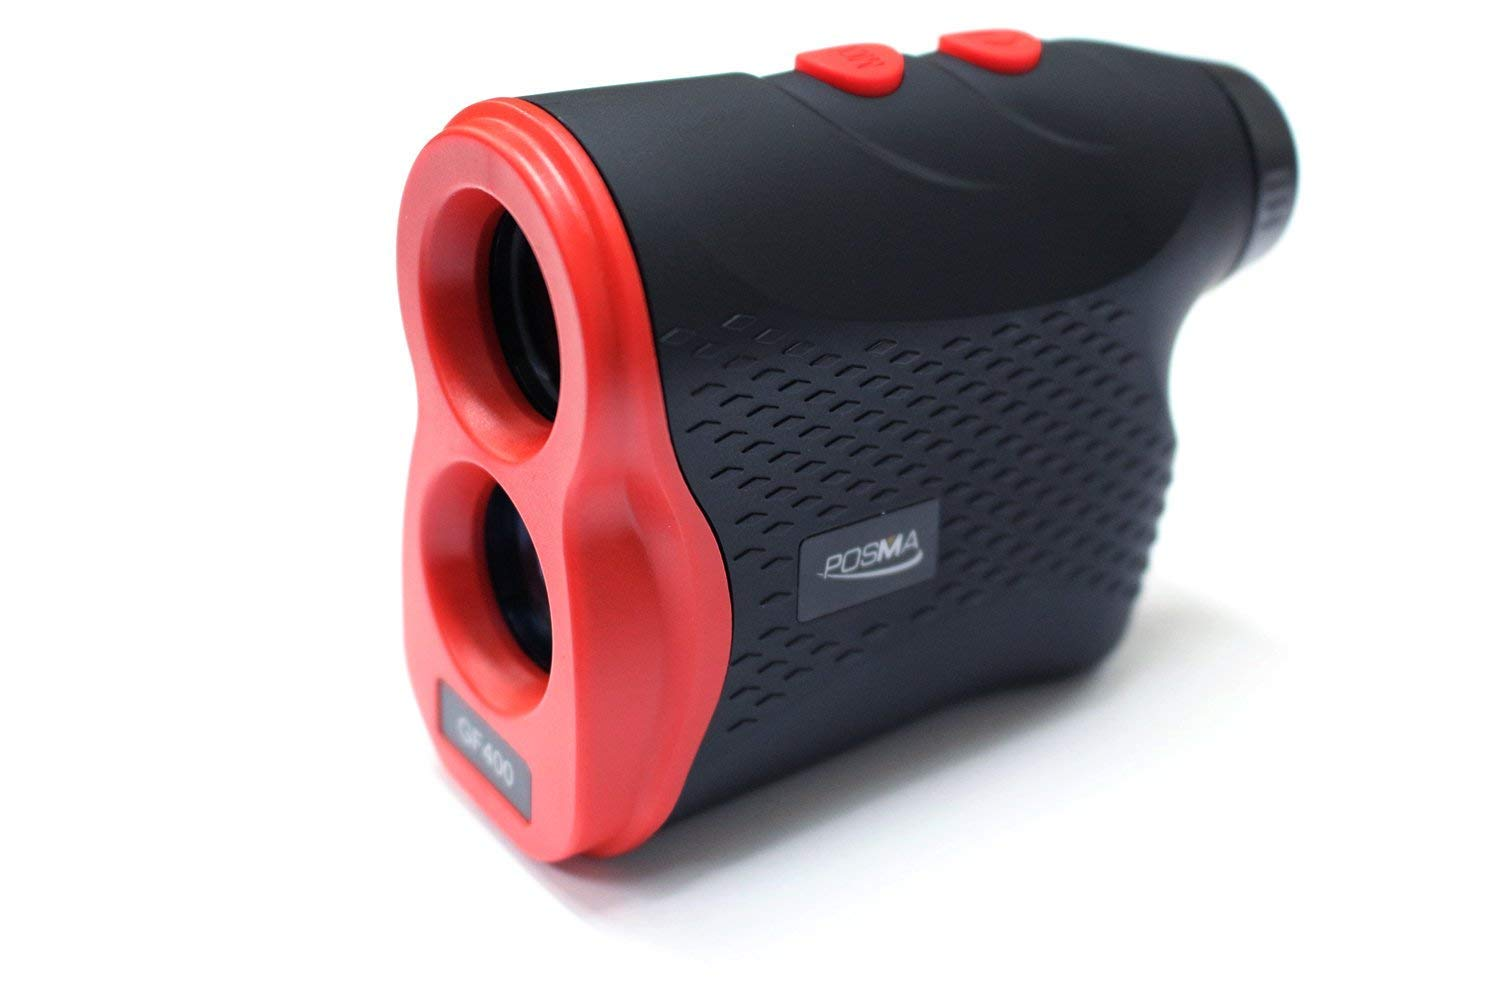 IDS Home POSMA GF400 Golf Range Finder Laser Rangefinder Scope,Golf 600 Meters Range Finder, Distance Speed Measurement